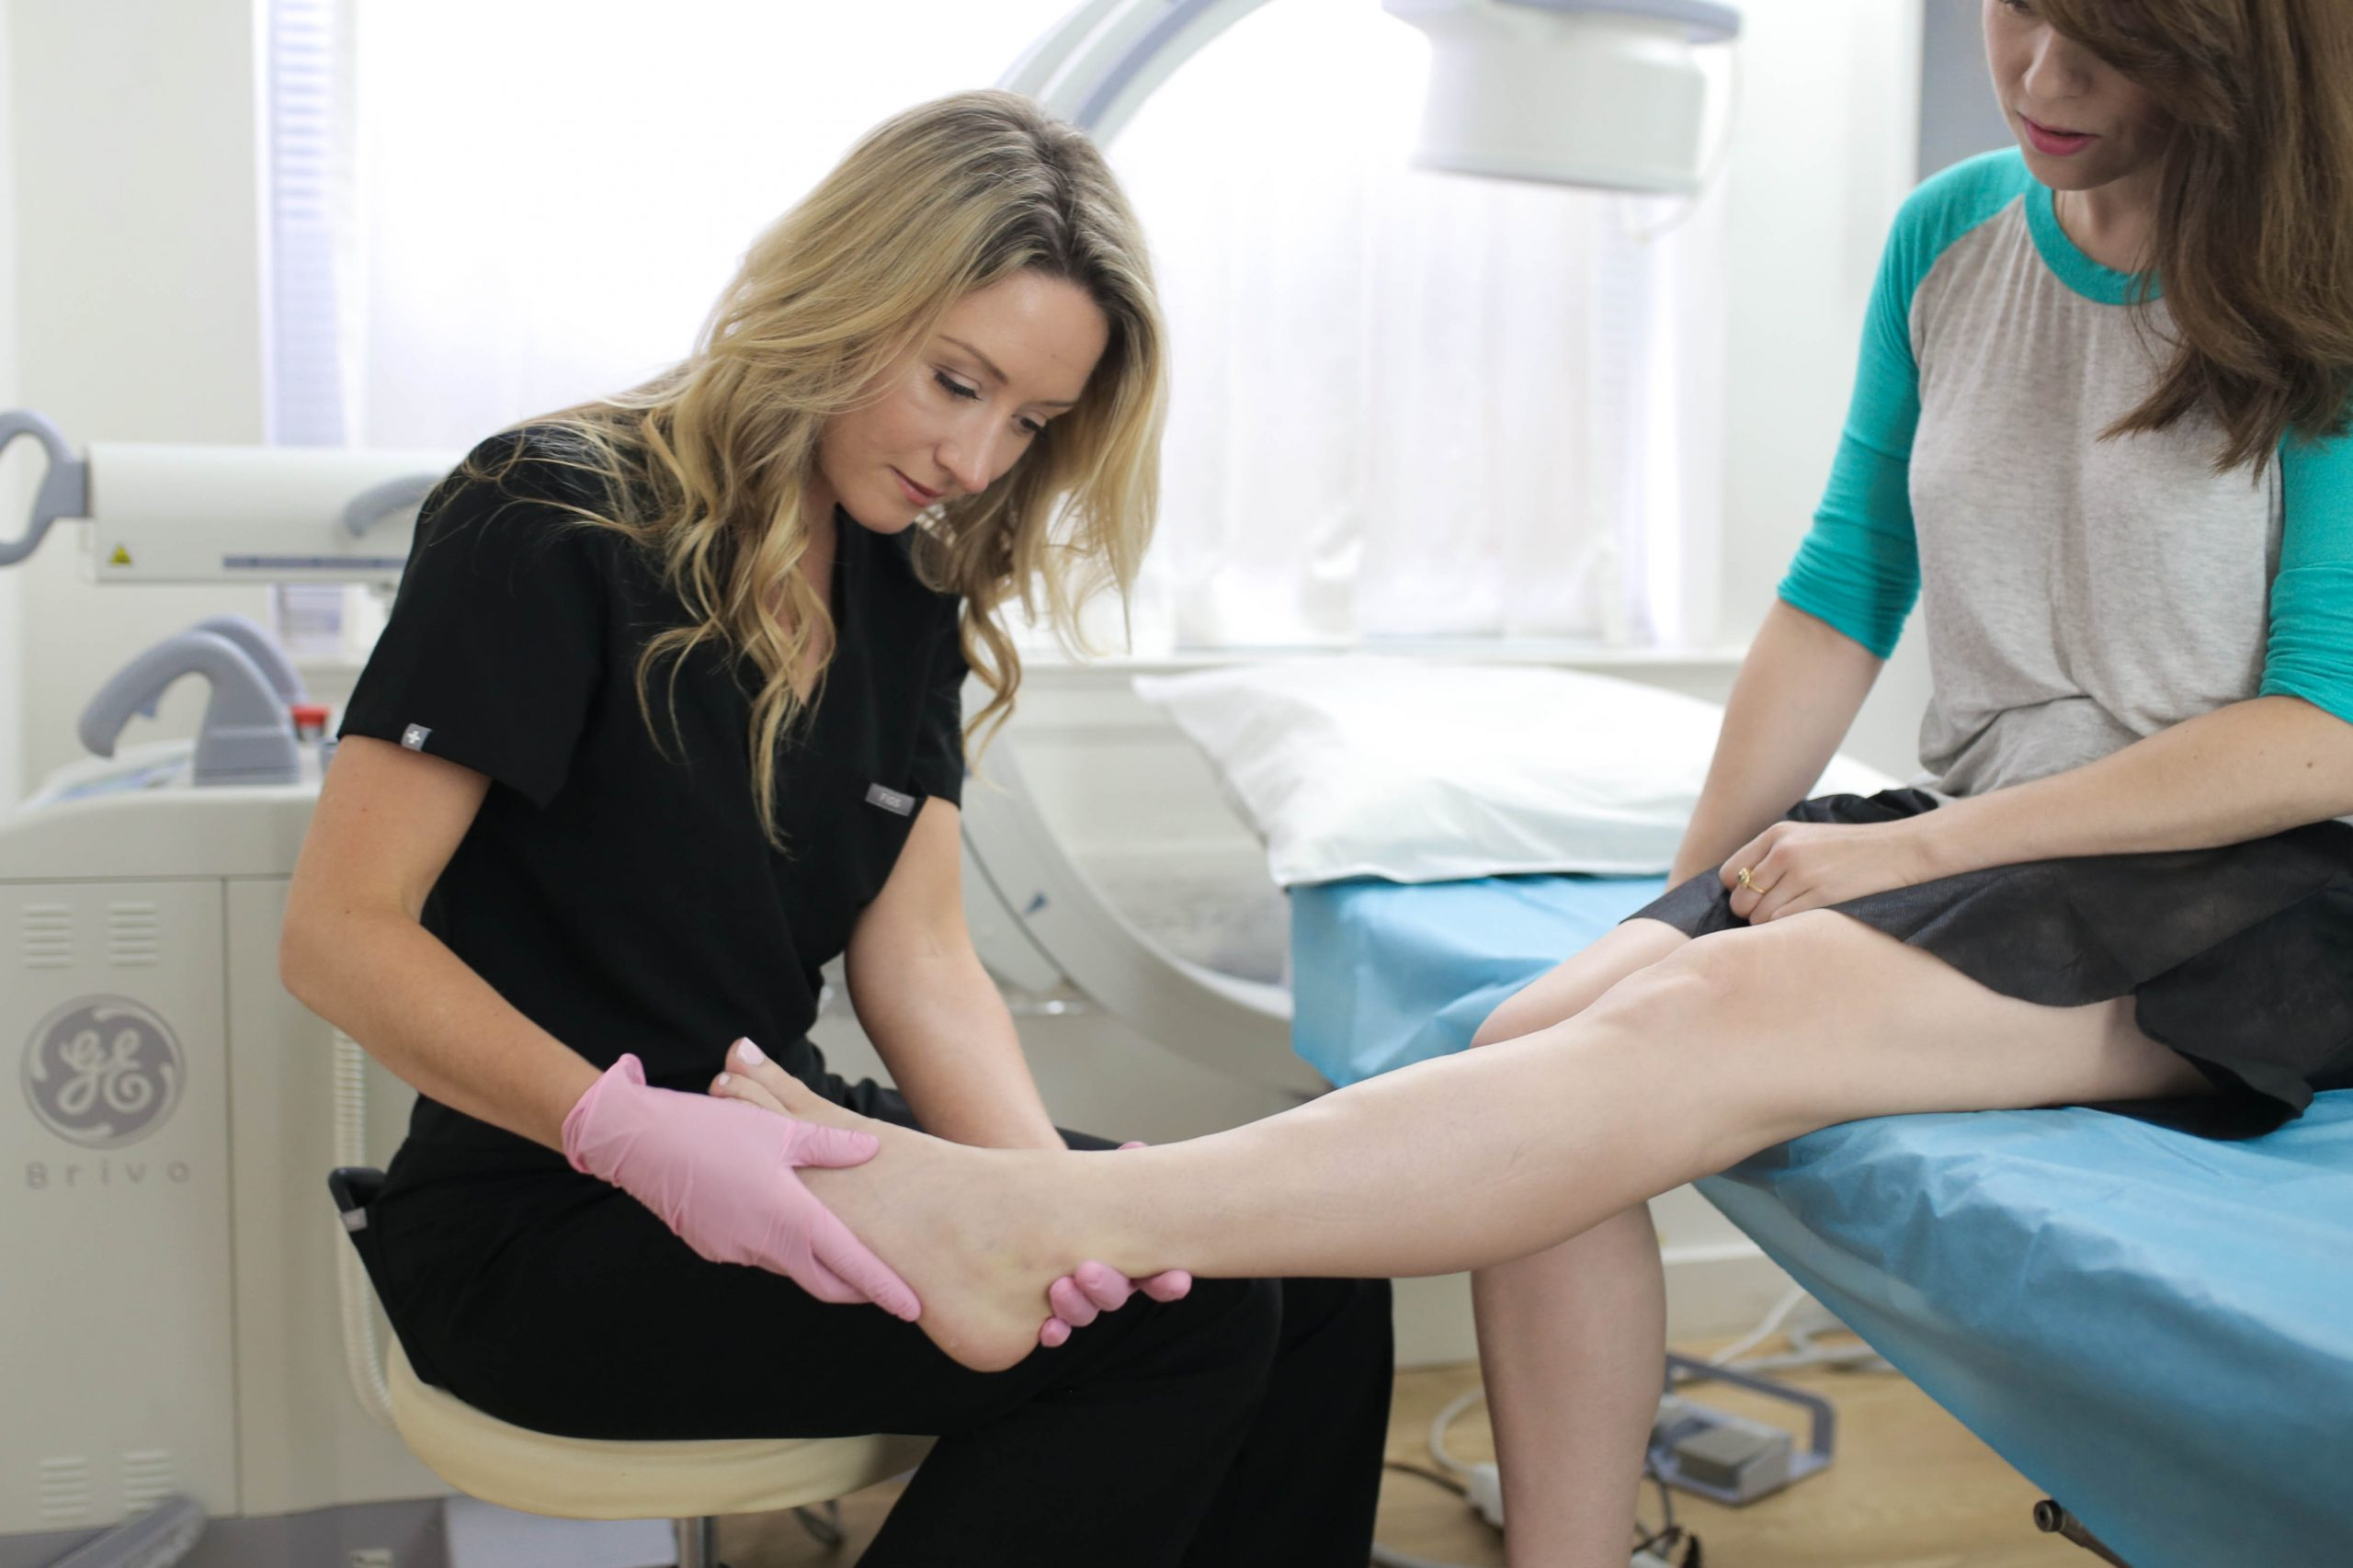 Are you looking for a vein doctor in Wayne, New Jersey? In this article, we introduce you to the best vein doctors in New Jersey and discuss spider vein and varicose vein treatments.